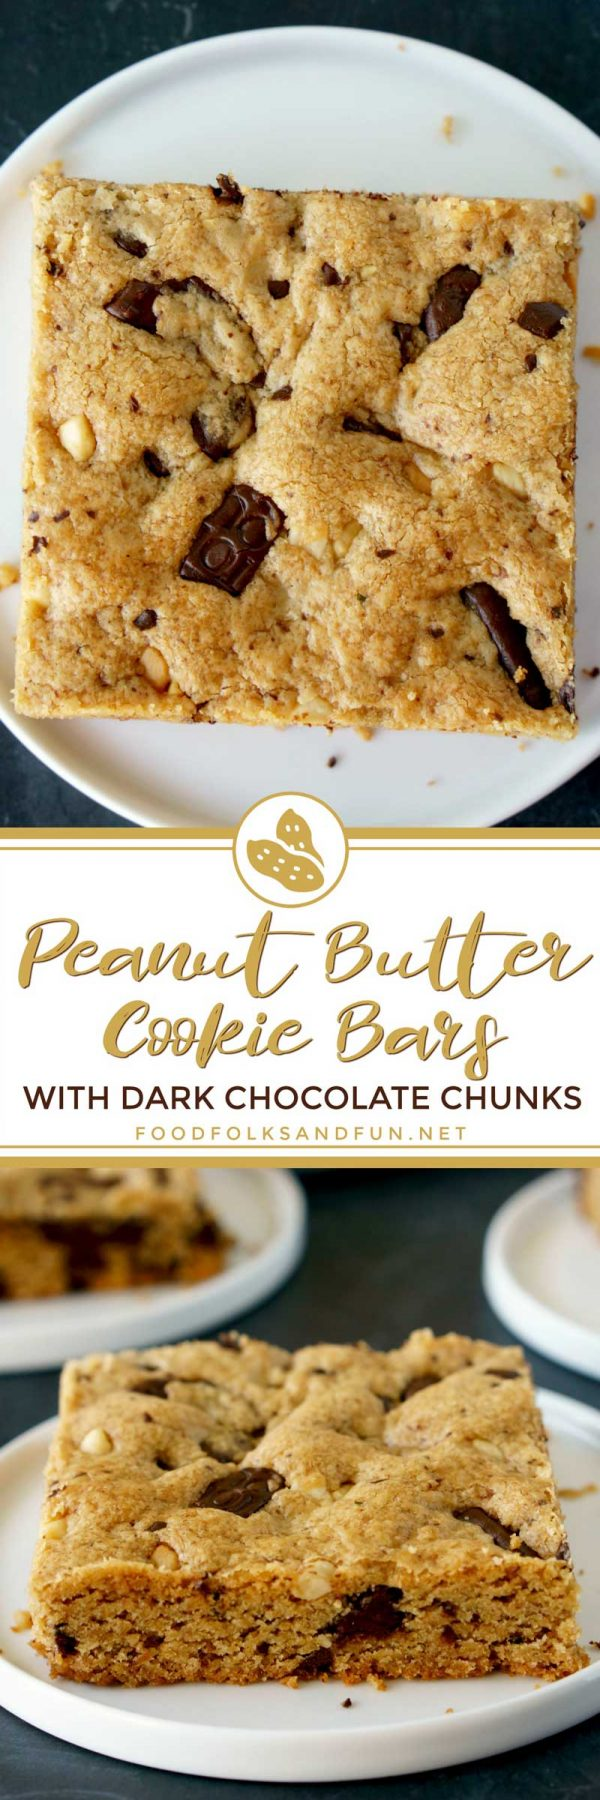 Easy Peanut Butter Cookie Bars recipe.